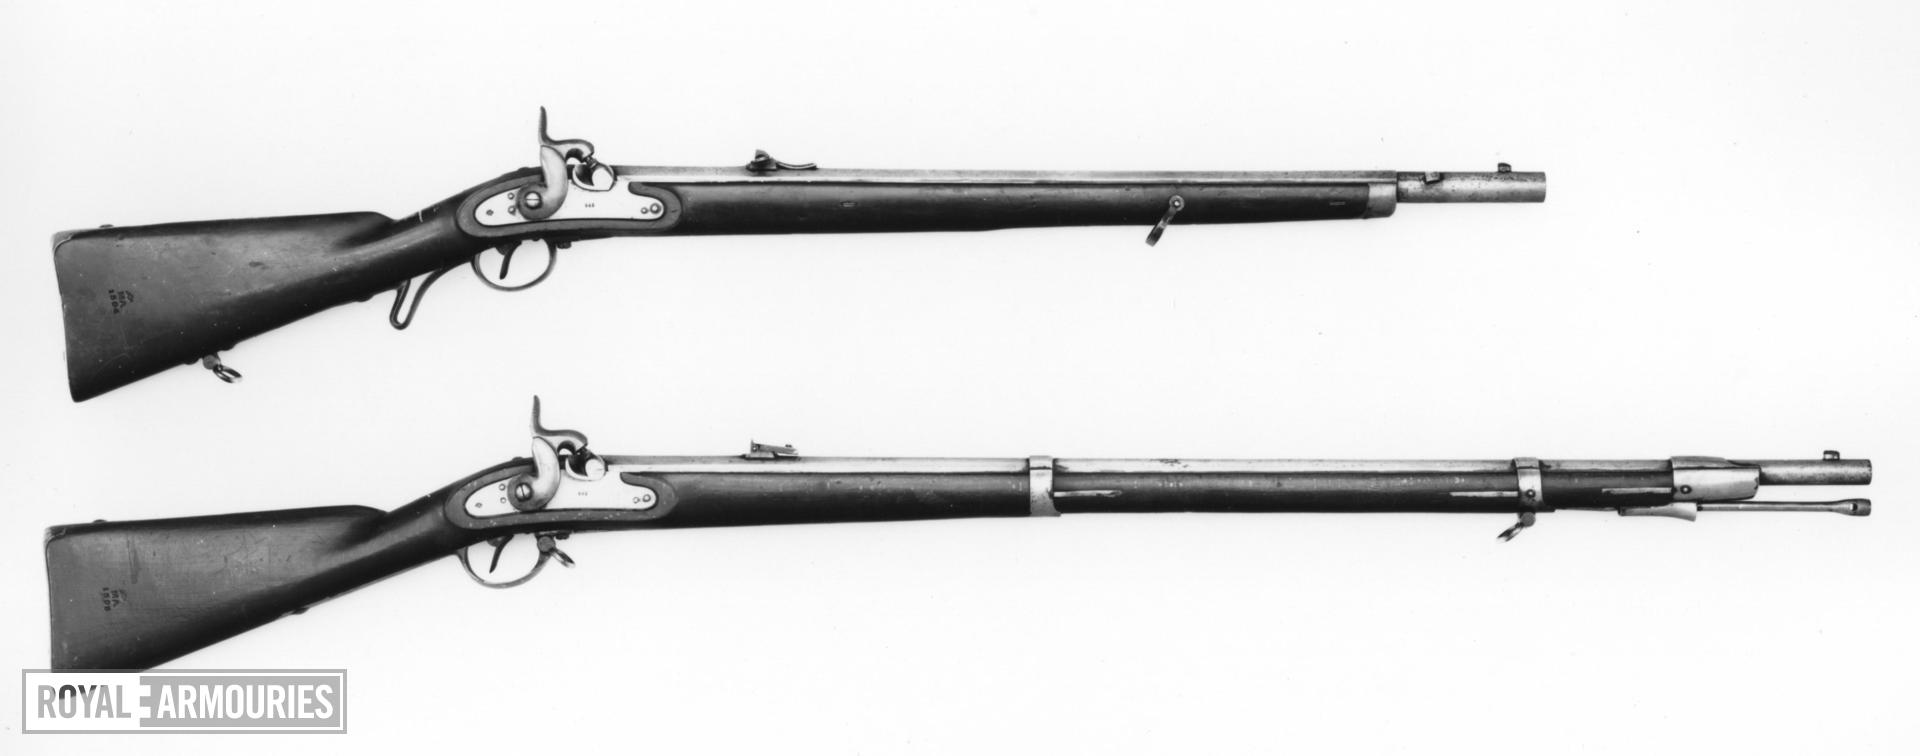 Percussion muzzle-loading rifle - Model 1854 Ordinary short model, Lorenz system action